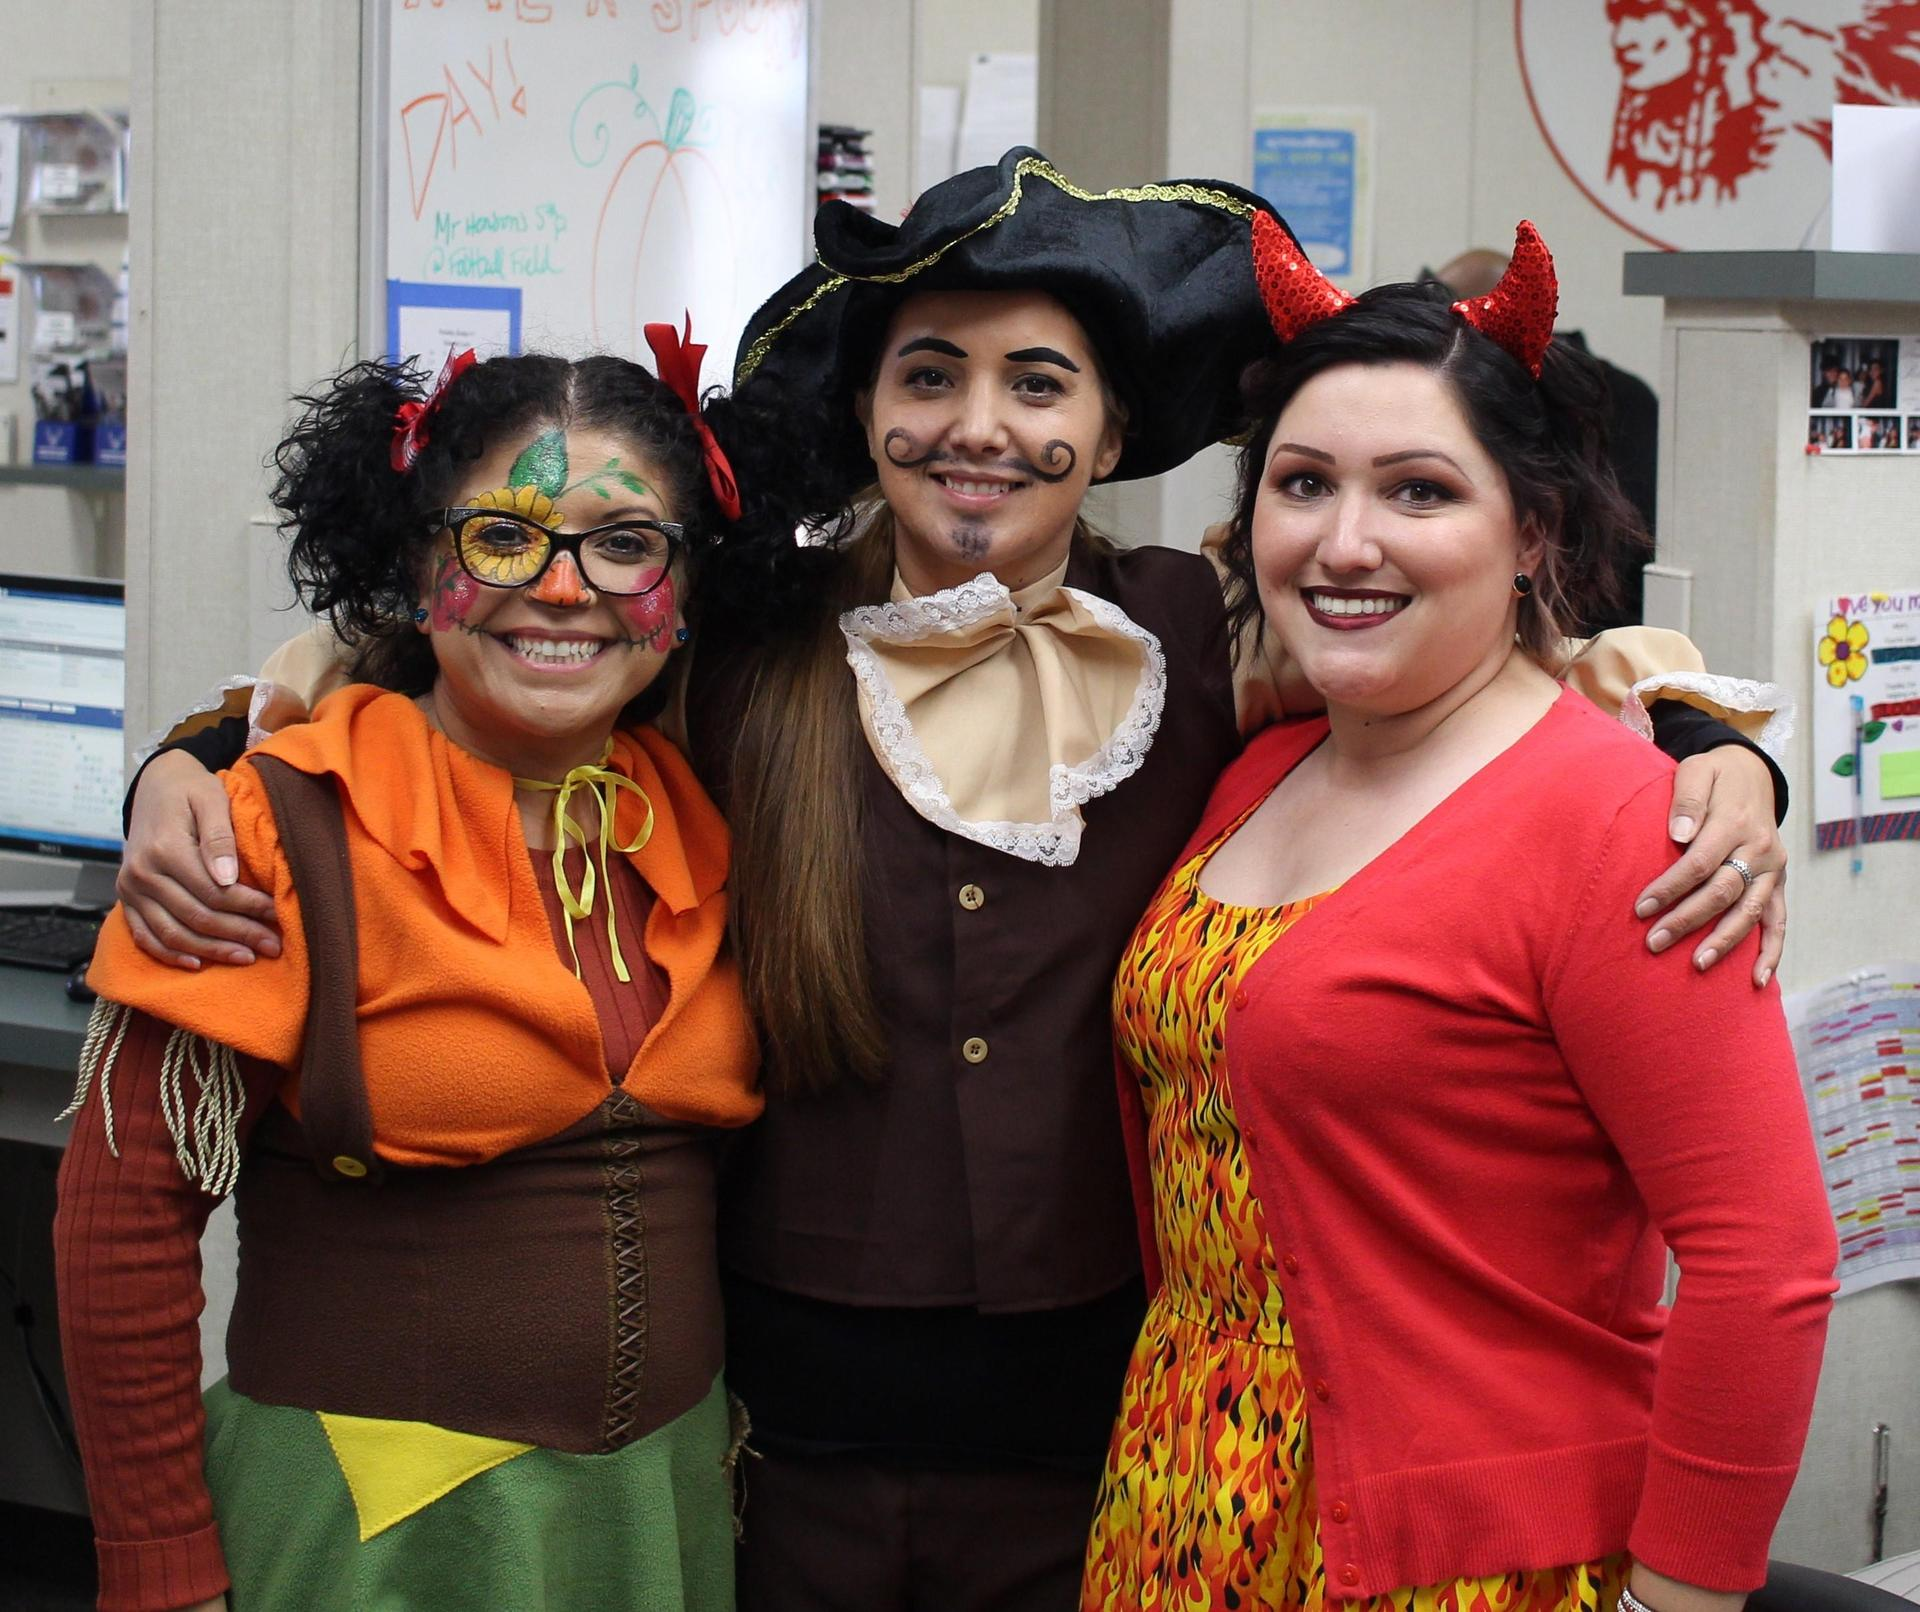 Ms. Martinez, Ms. Rodriguez, Ms. VanTassel